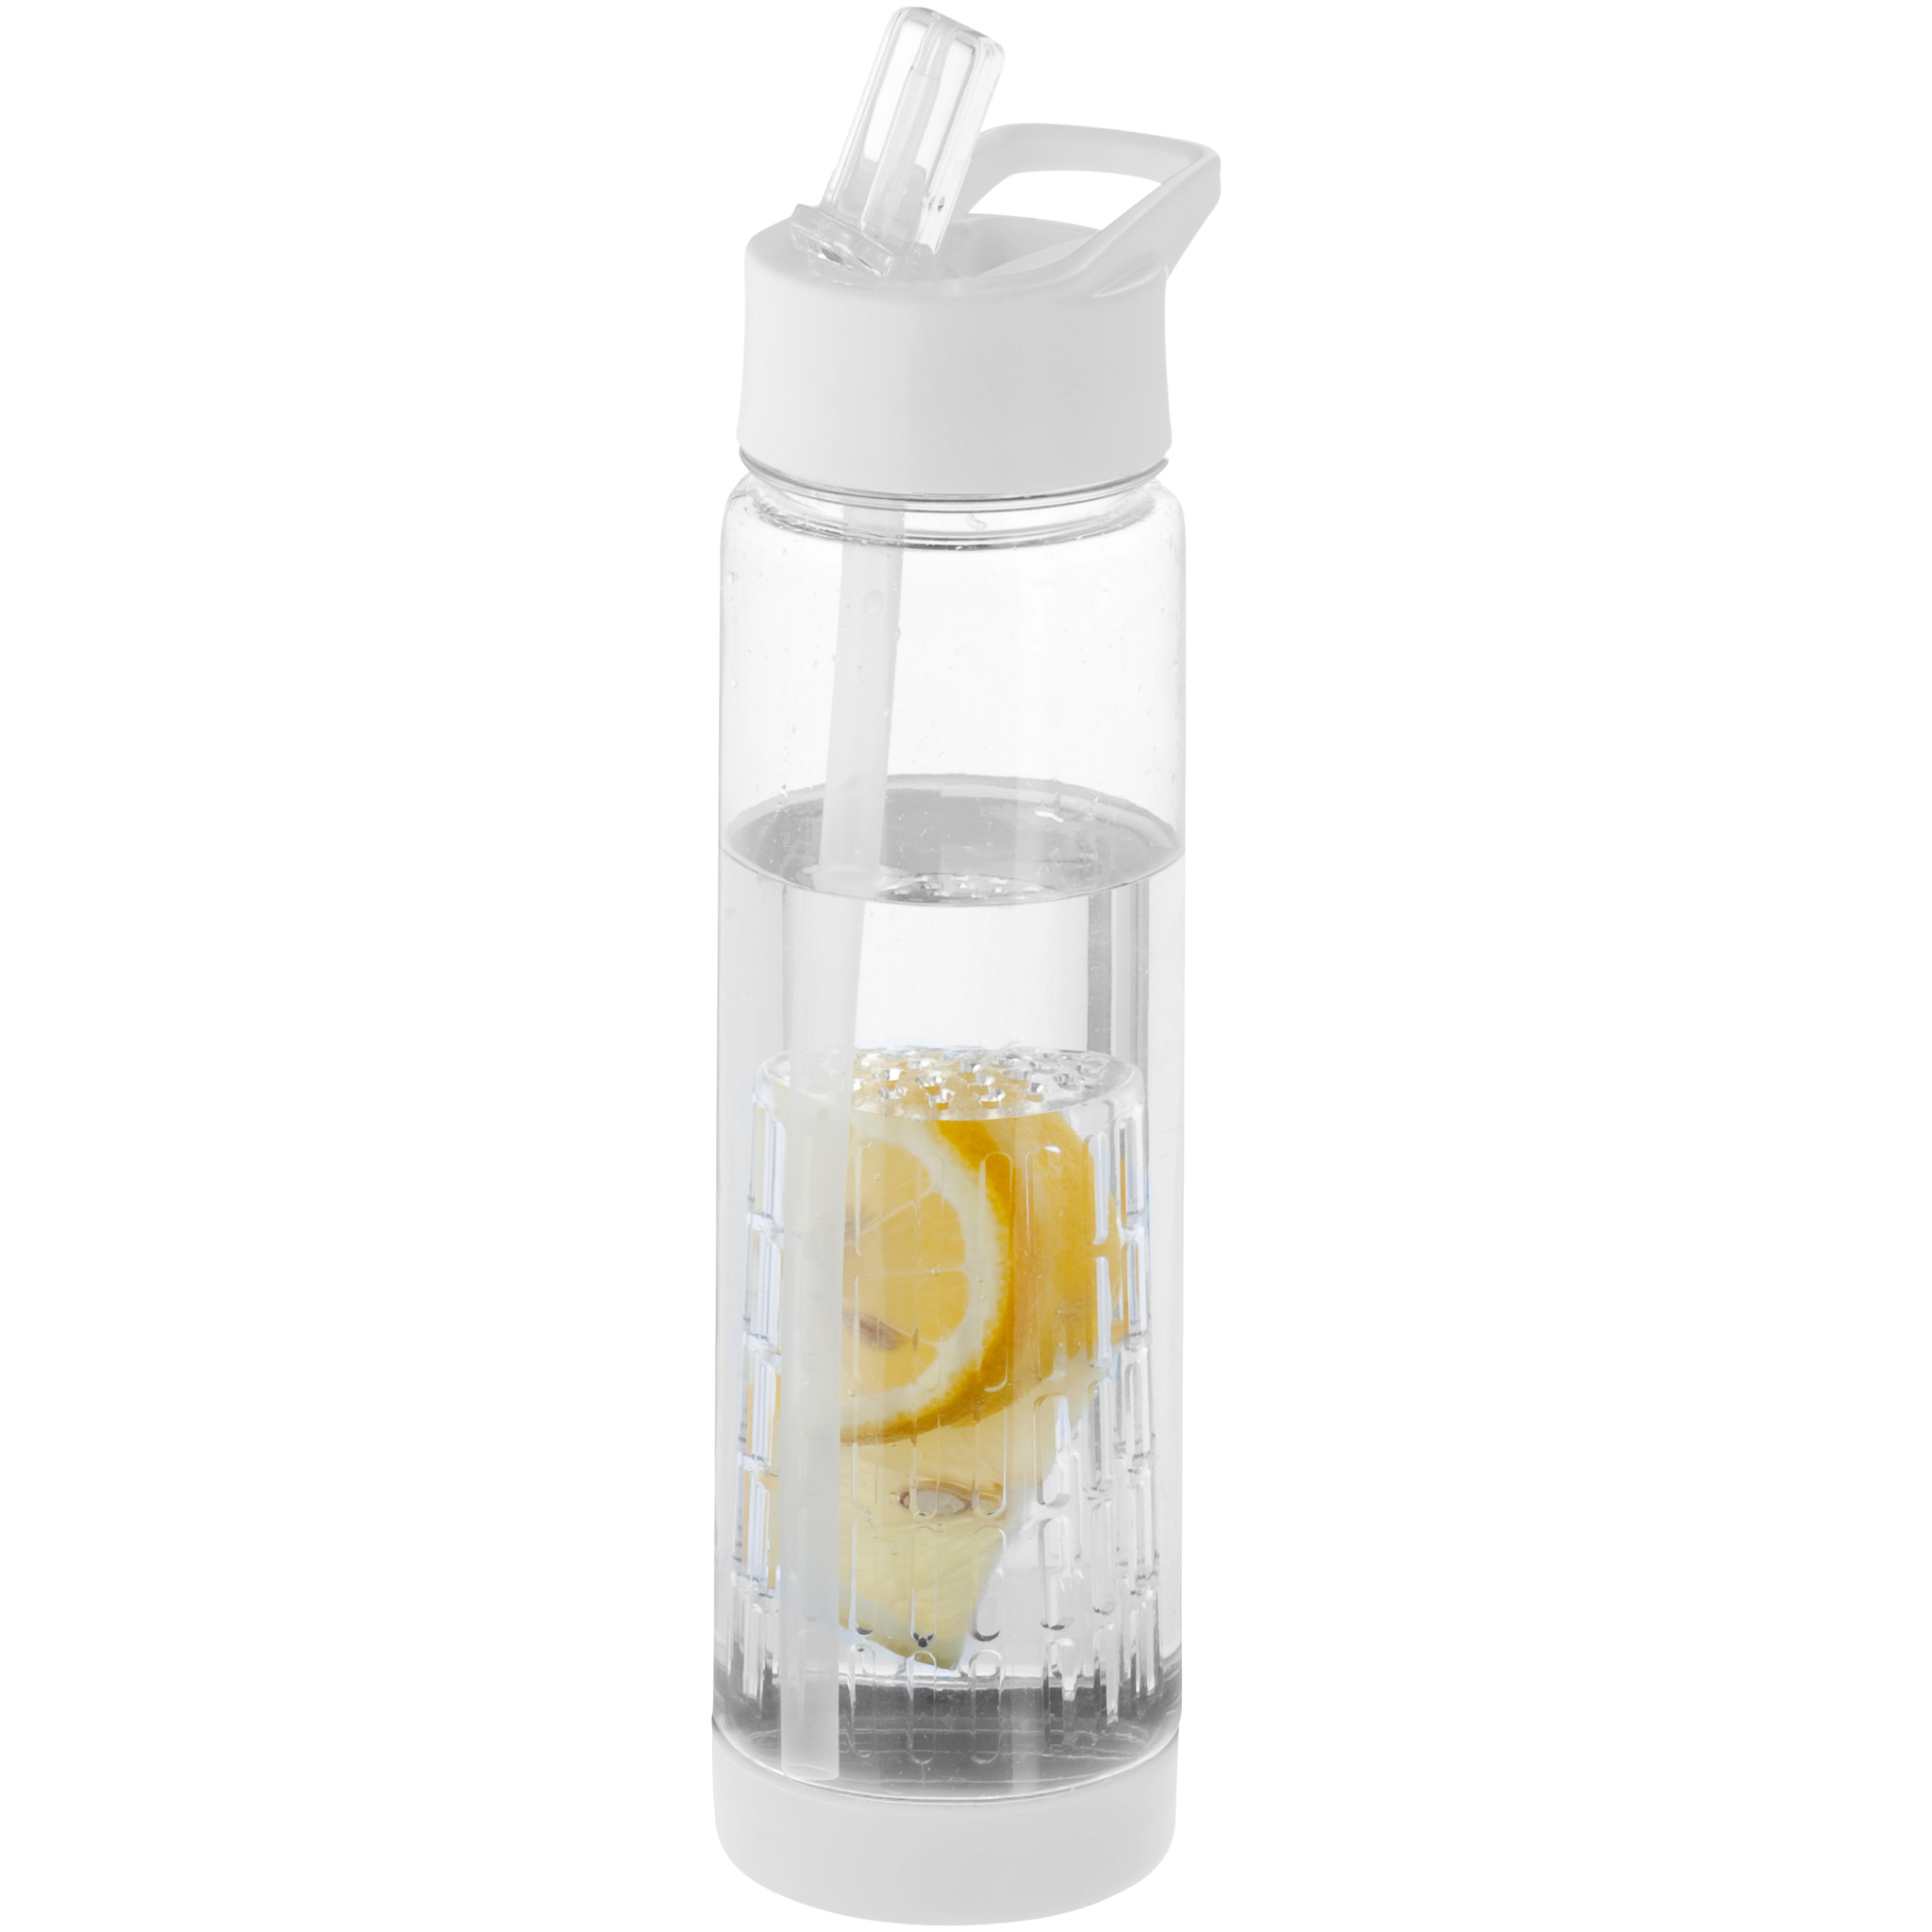 TUTTI FRUTTI BOTTLE with Infuser in Transparent white